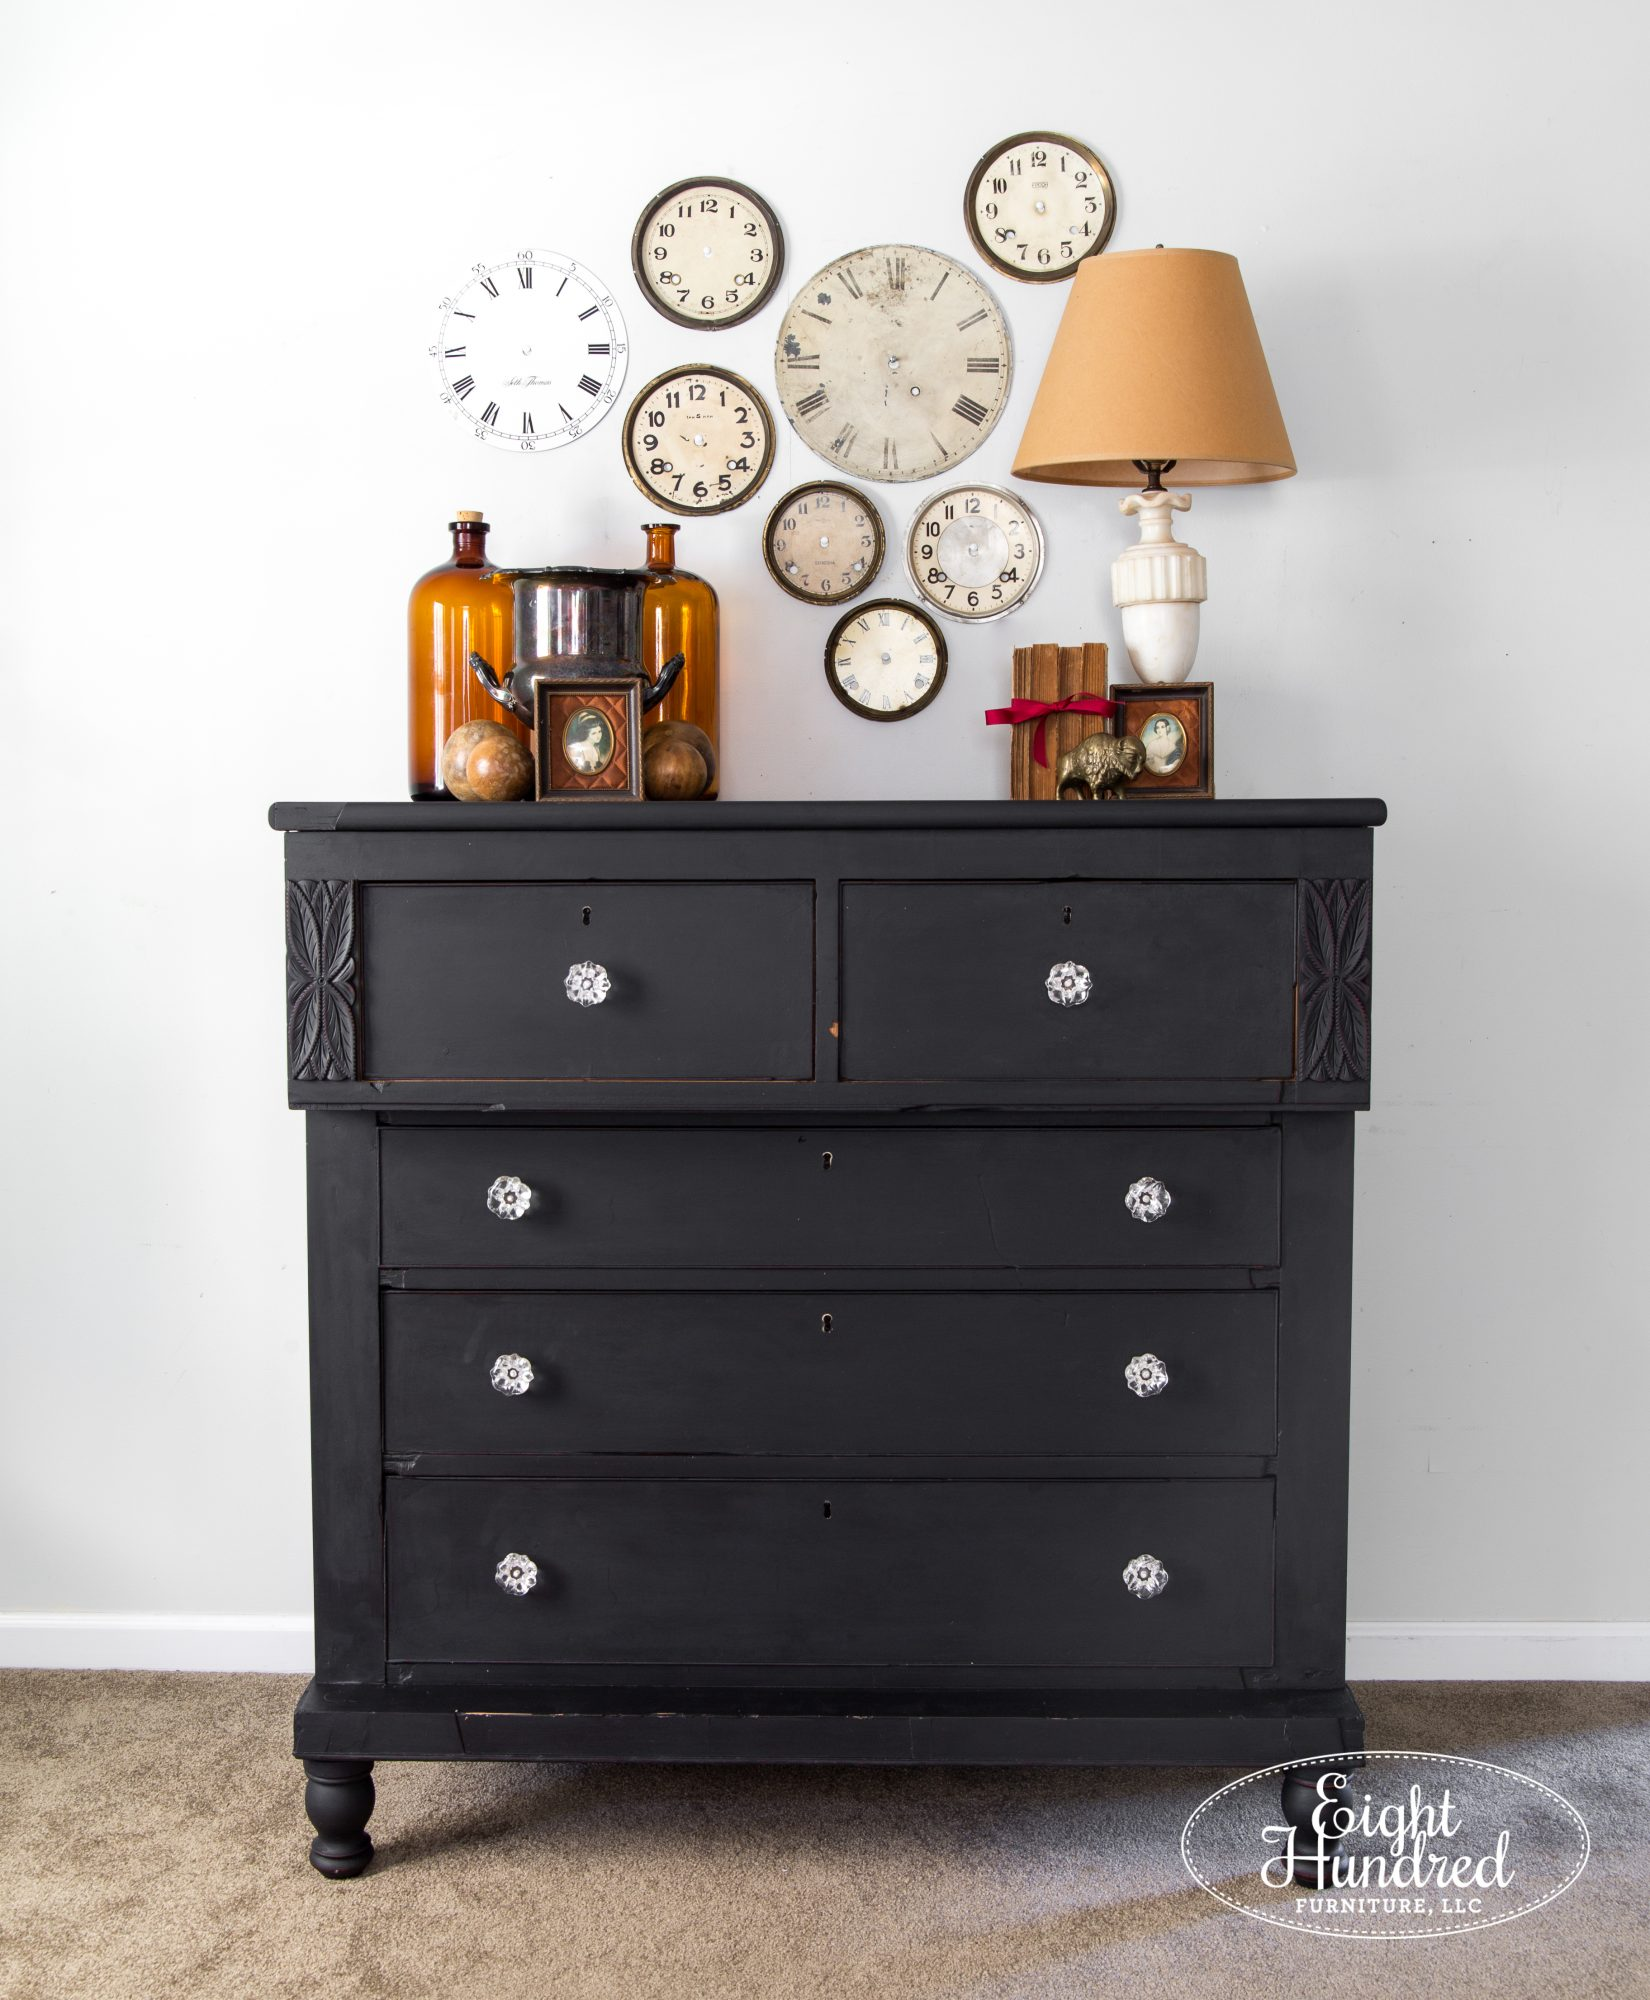 Empire dresser painted in Typewriter by Miss Mustard Seed's Milk Paint